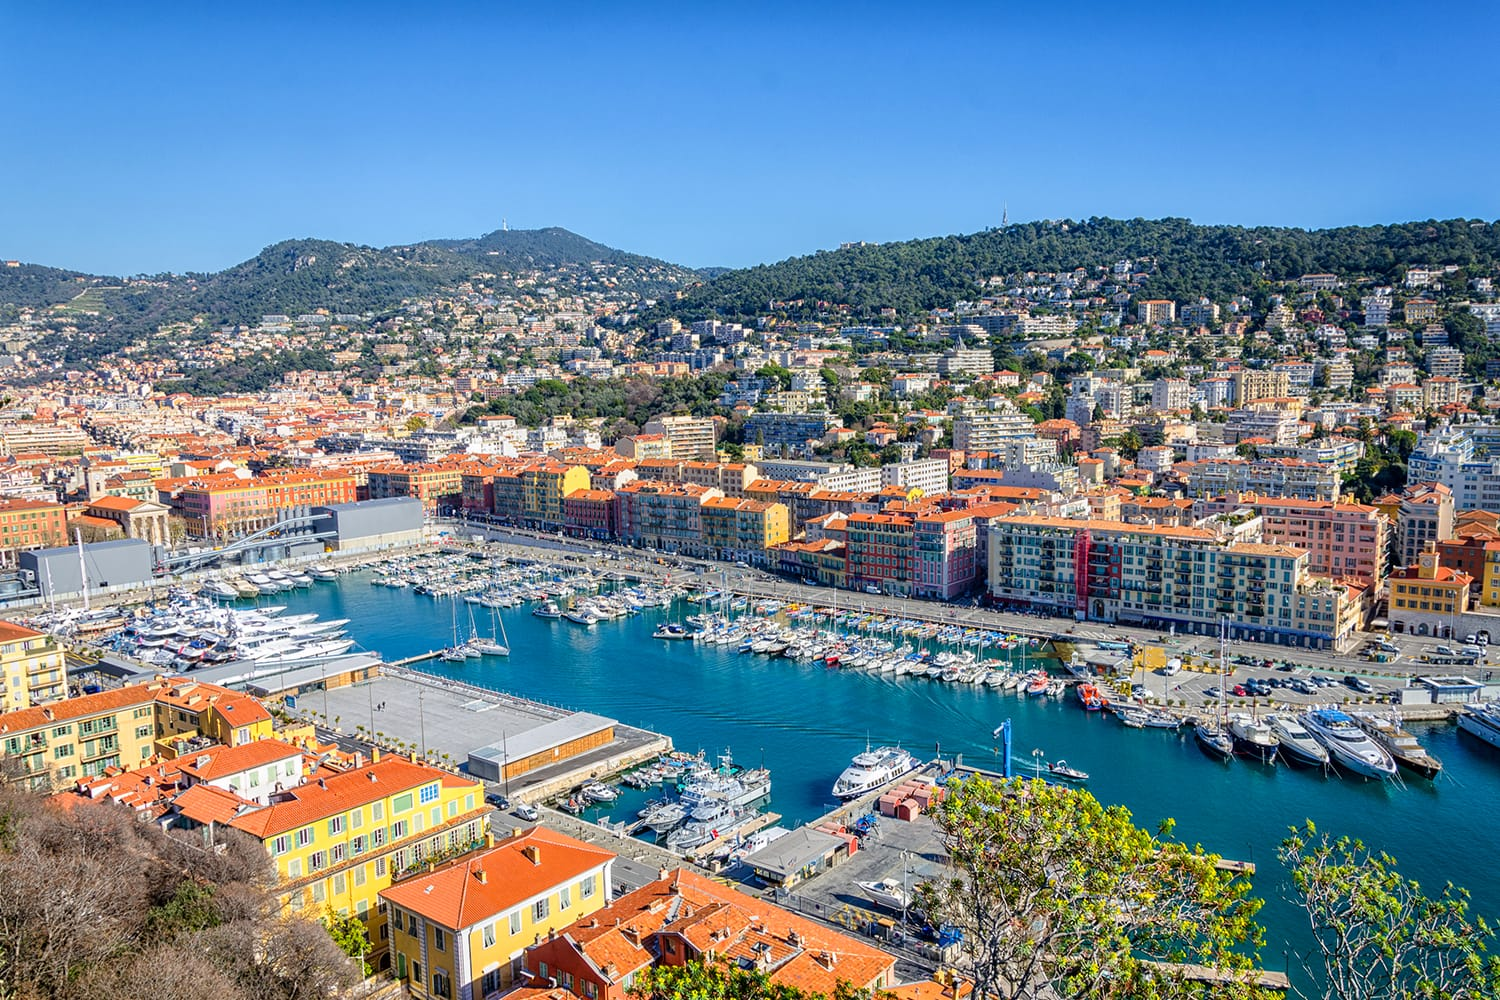 Panoramic view of the harbor in Nice, France